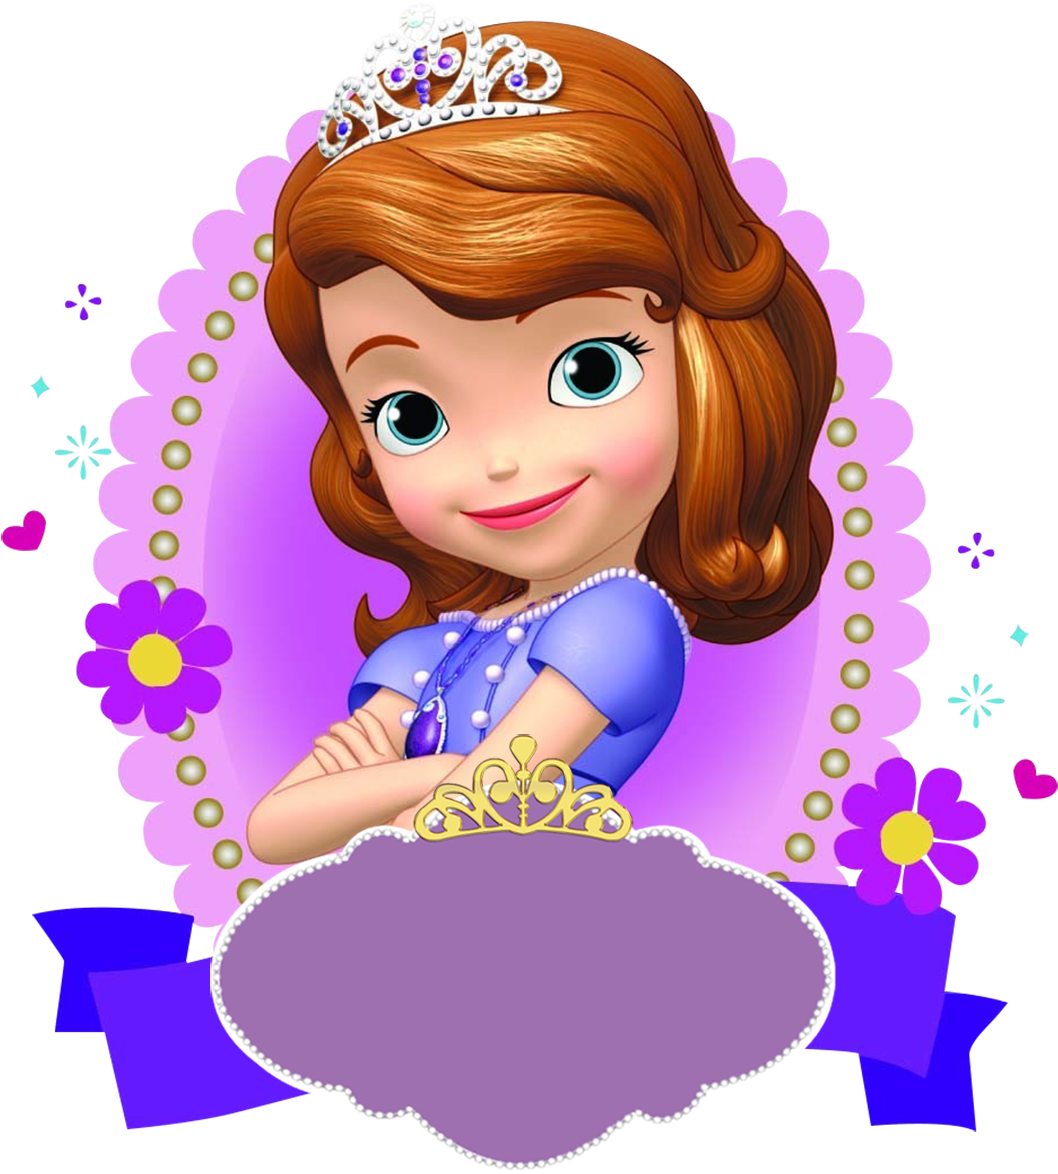 Download Princesa Sofia PNG Image with No Background.